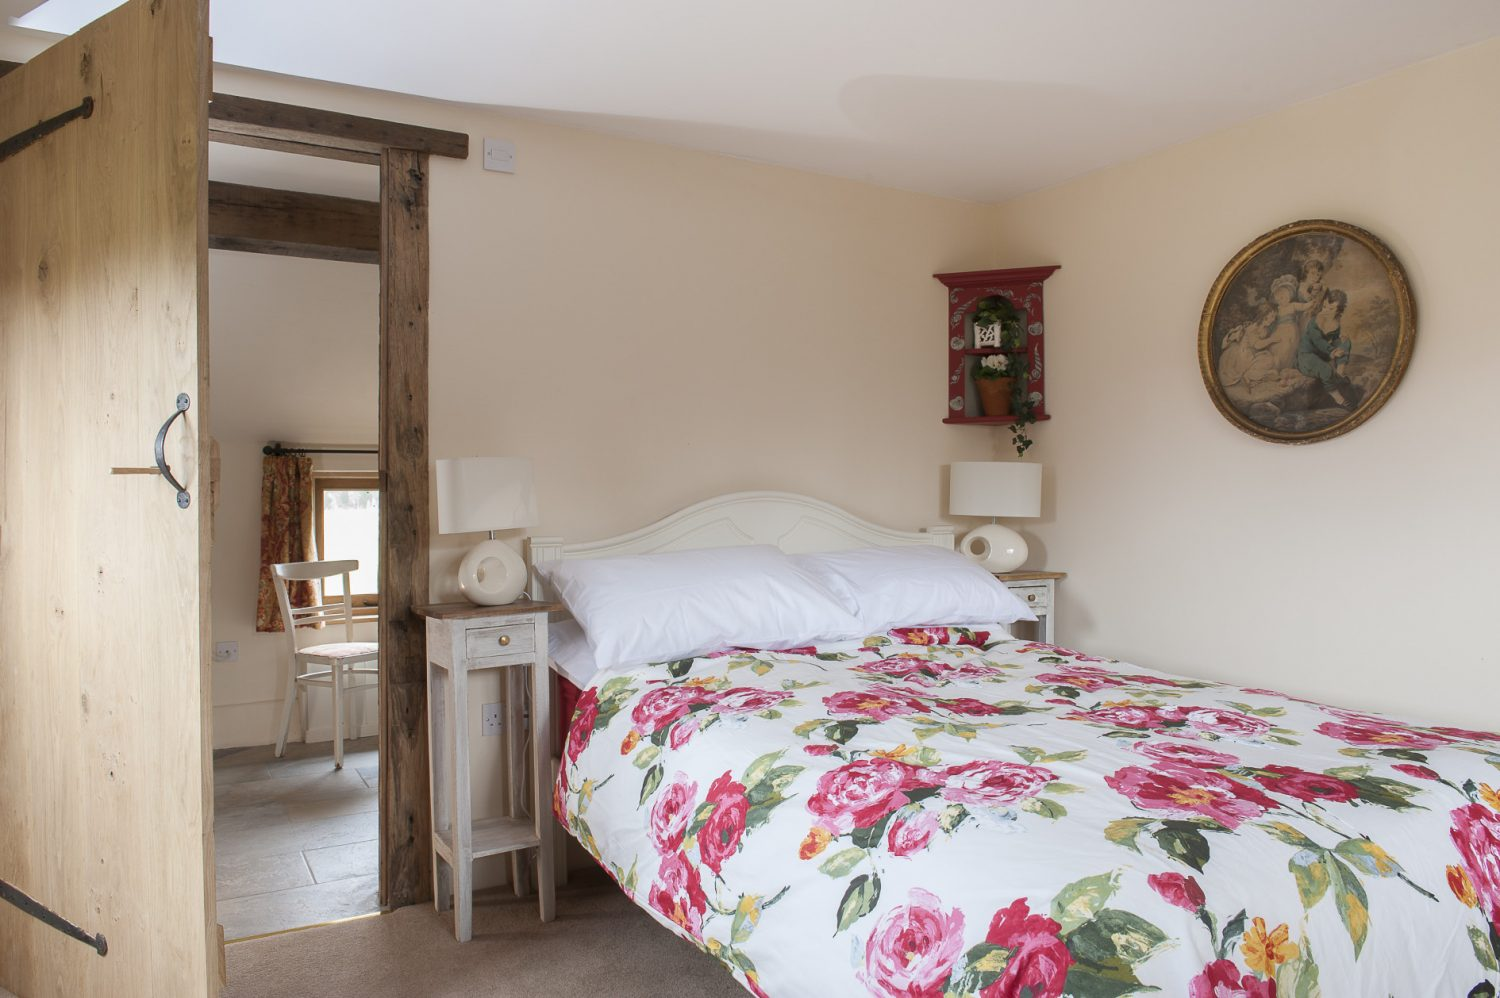 Downstairs in the main bedroom, two dining chairs have been painted white and recovered in Beaumont & Fletcher. Caroline found the corbel on one wall at Symonds Salvage in Pluckley and the distressed leather-topped writing desk at Rising Star in Tenterden